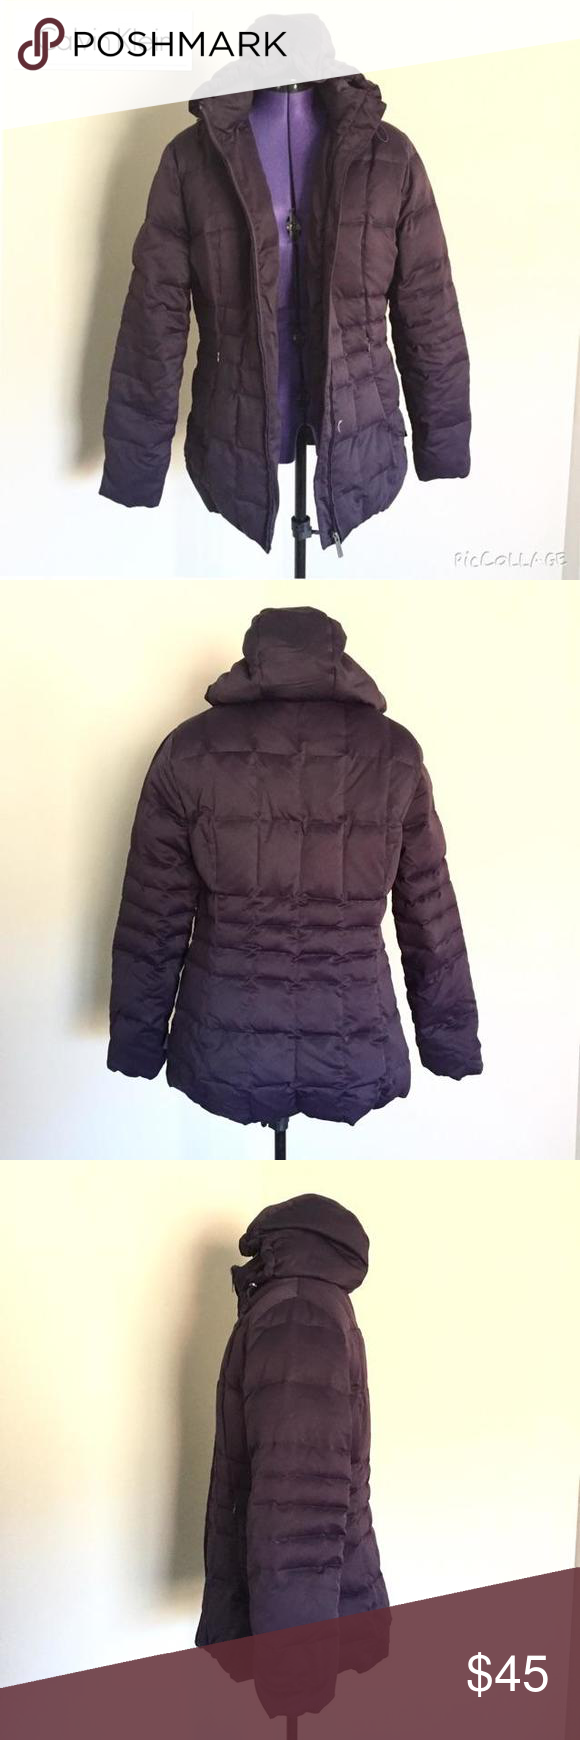 Calvin Klein Down Winter Coat Ultra warm quilted down winter coat from Calvin Klein. Deep plum color. Hood is detachable. Gently worn but in excellent condition. It's too big for me or else I would still be wearing it. Calvin Klein Jackets & Coats Puffers